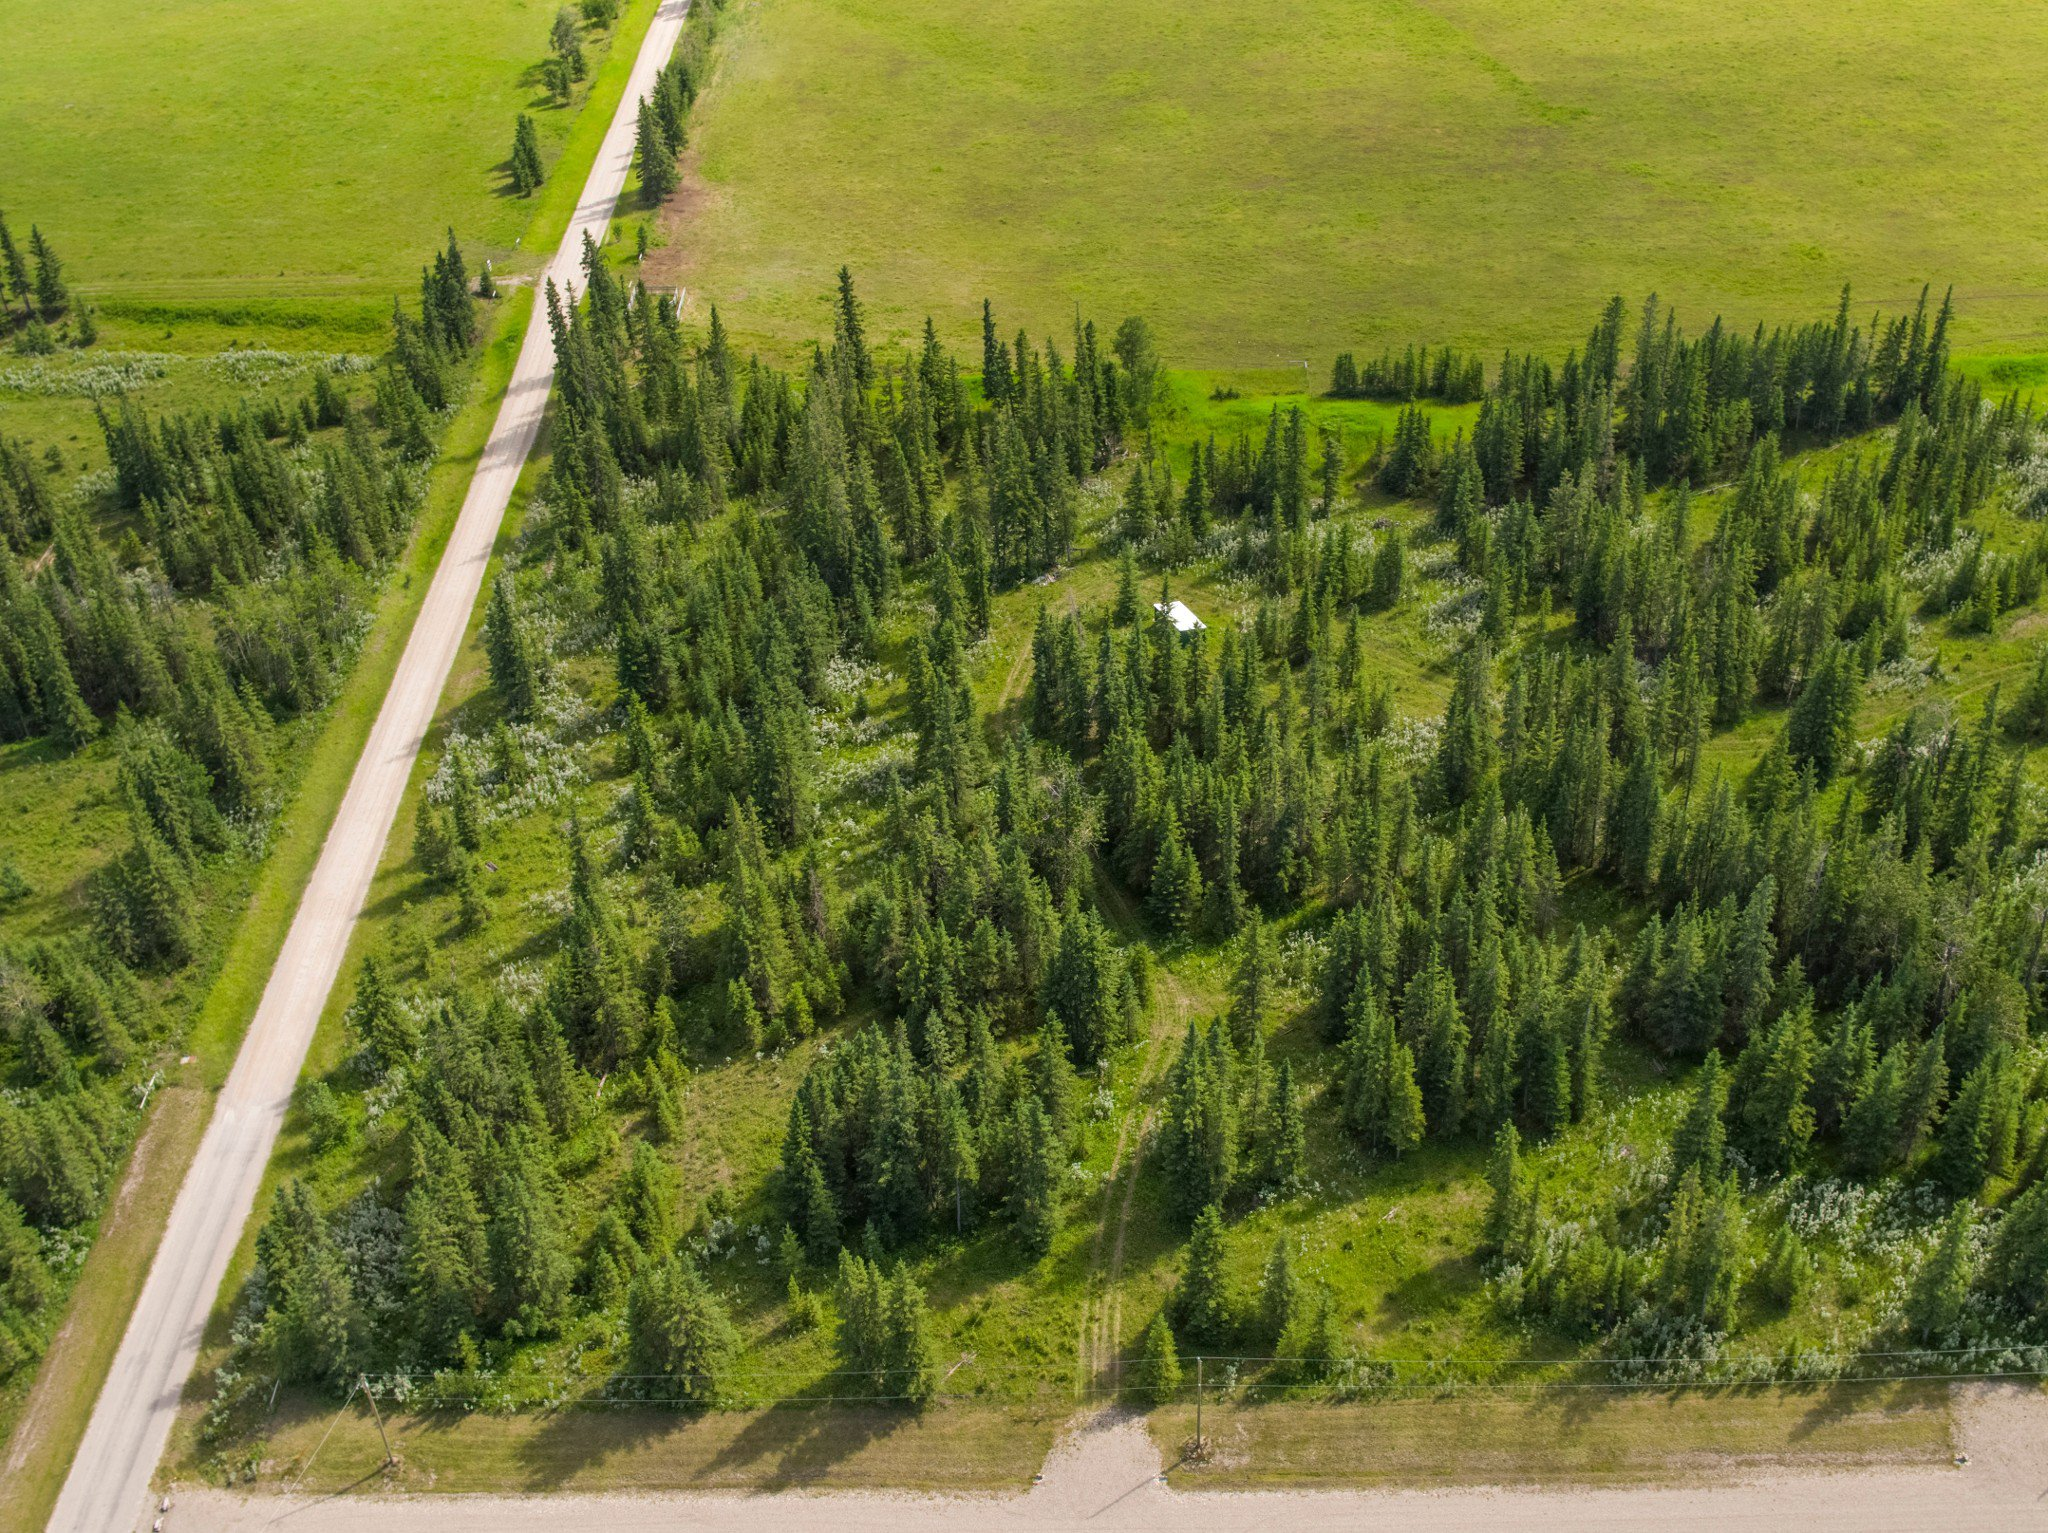 Main Photo: 3-34364 RANGE ROAD 42 in : Rural Mountain View County Land for sale (Mountain View)